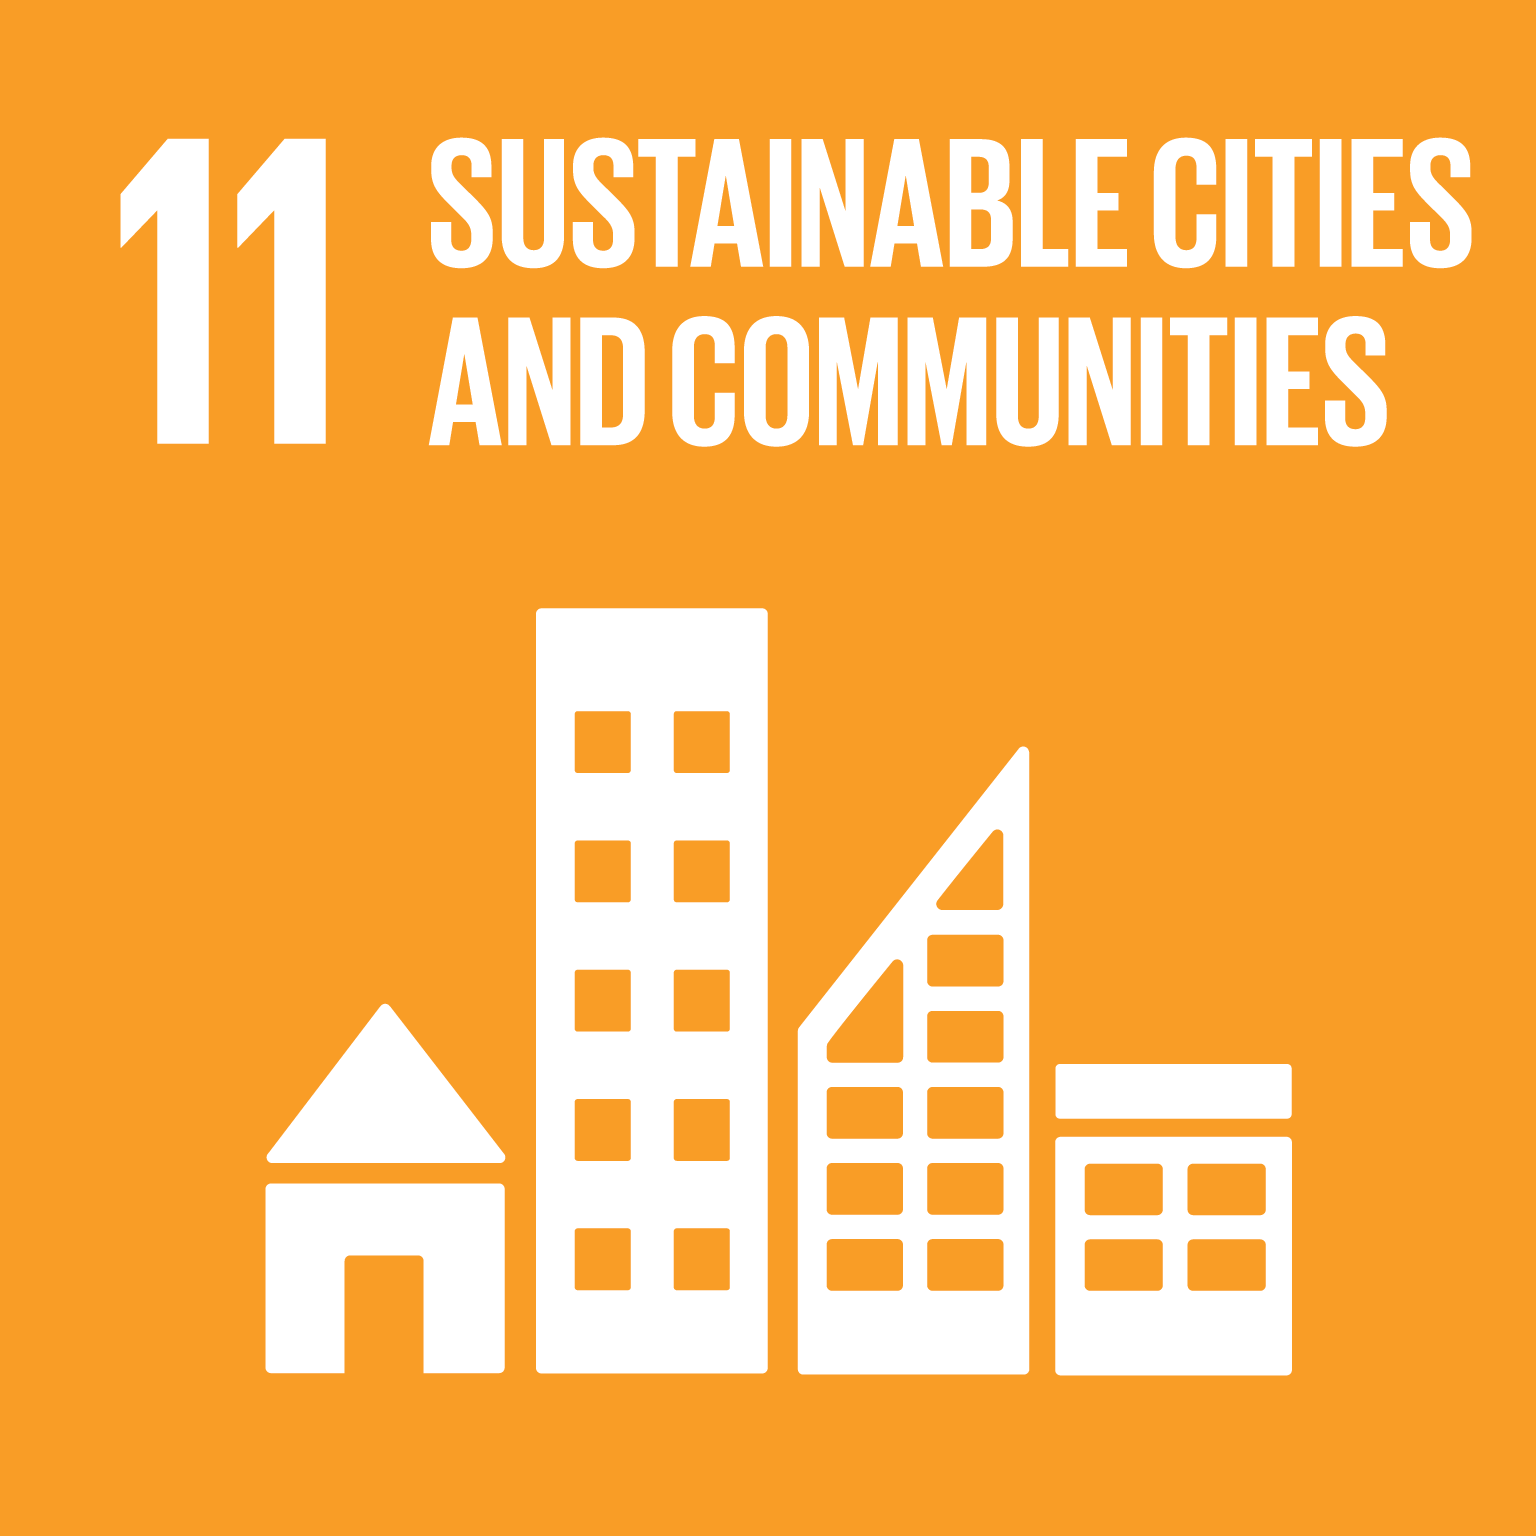 Sustainable Development Goal 11 icon